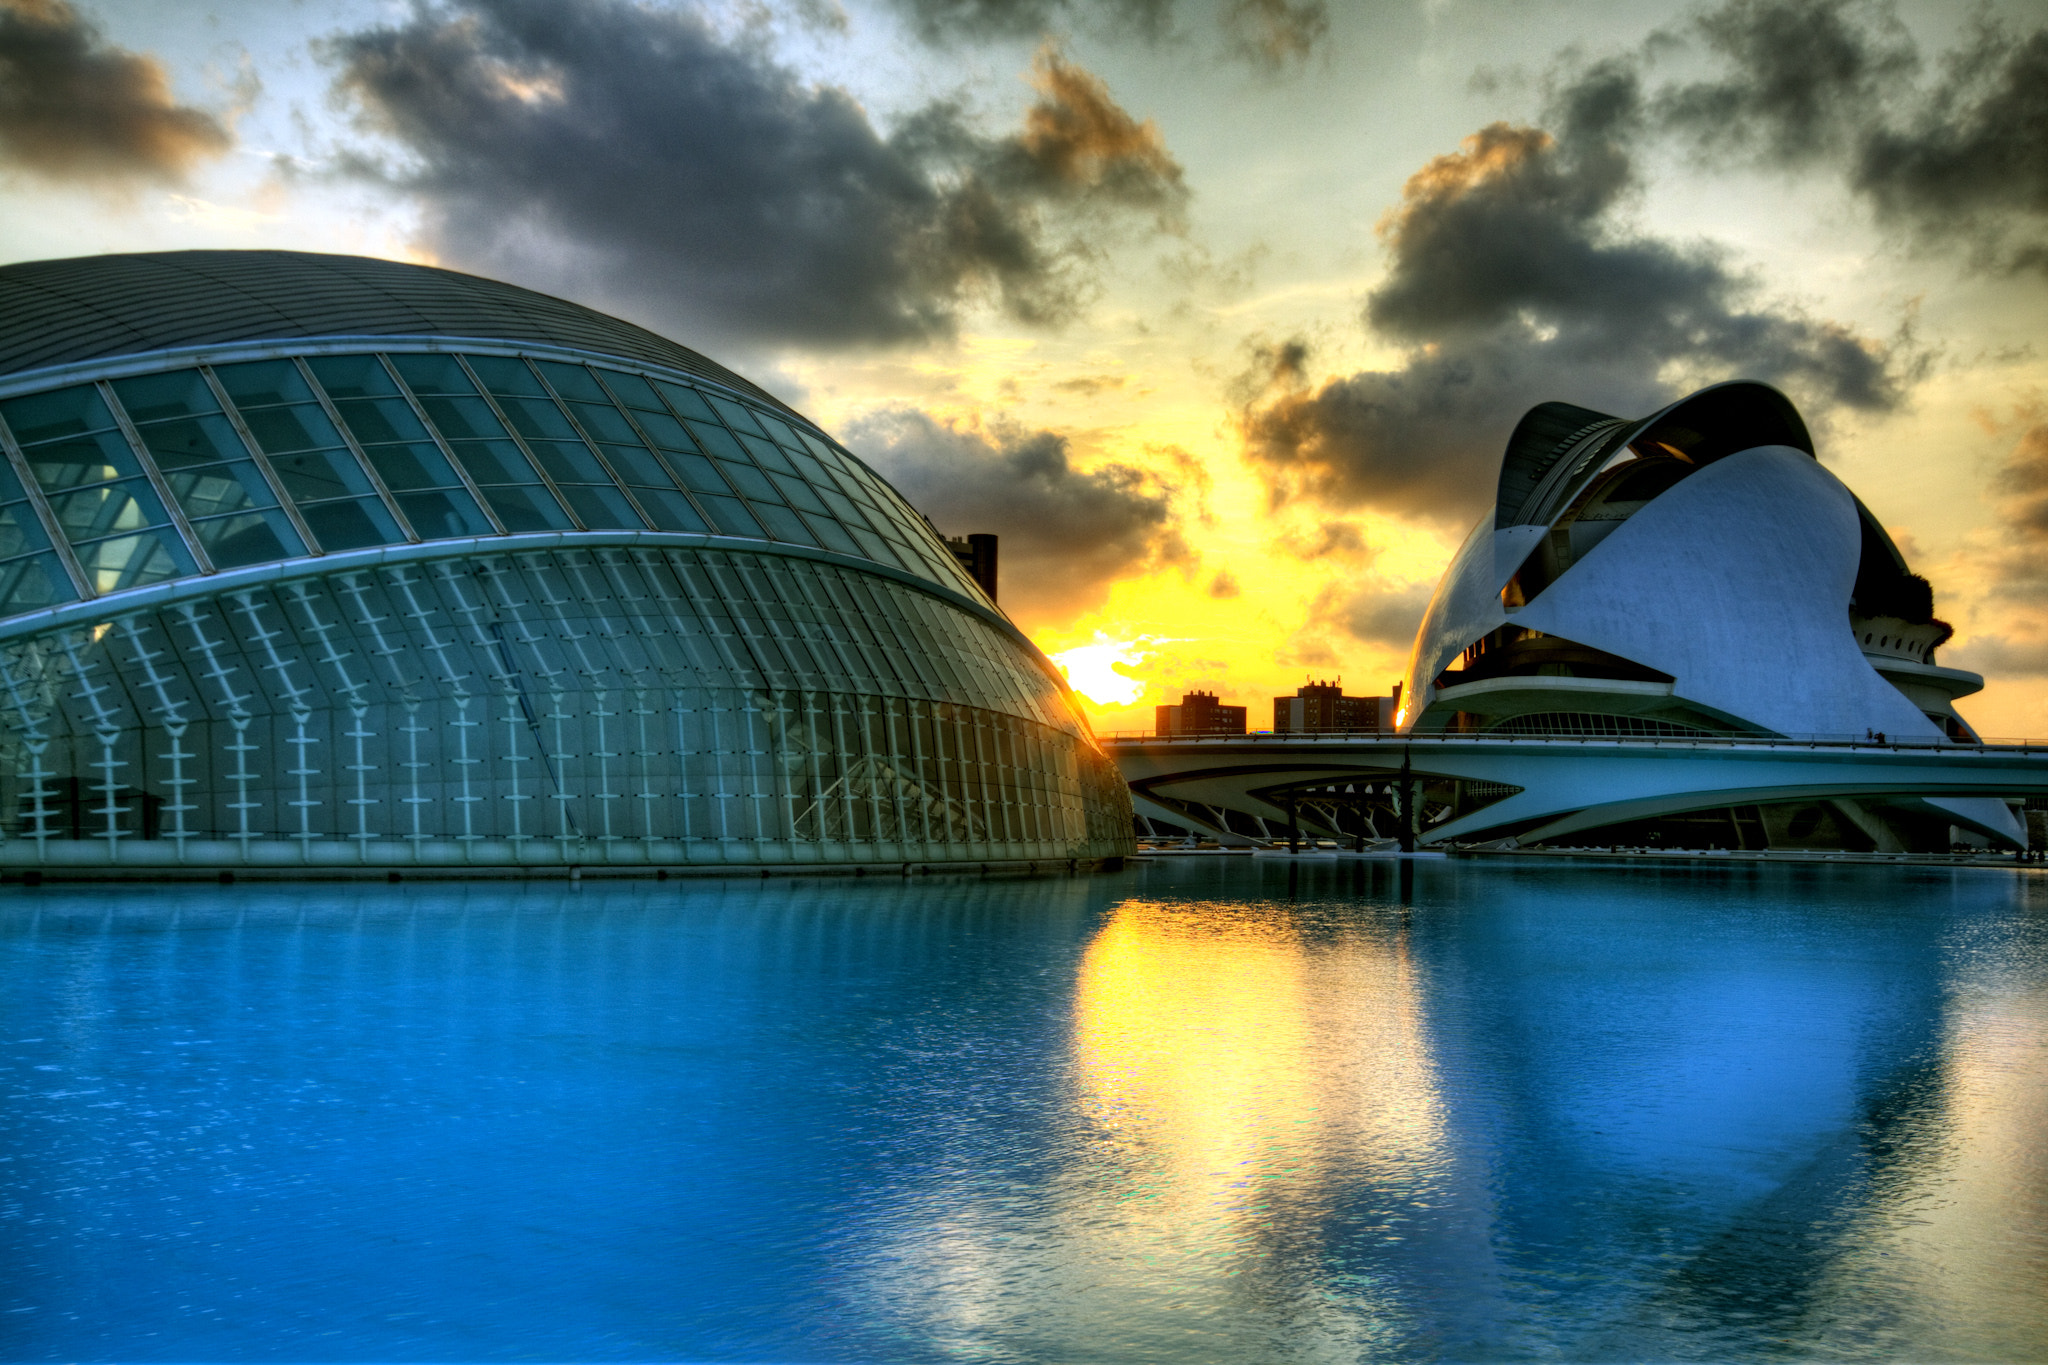 Photograph Palau de les Arts Reina Sofía and Hemesferic by Harald Wagener on 500px